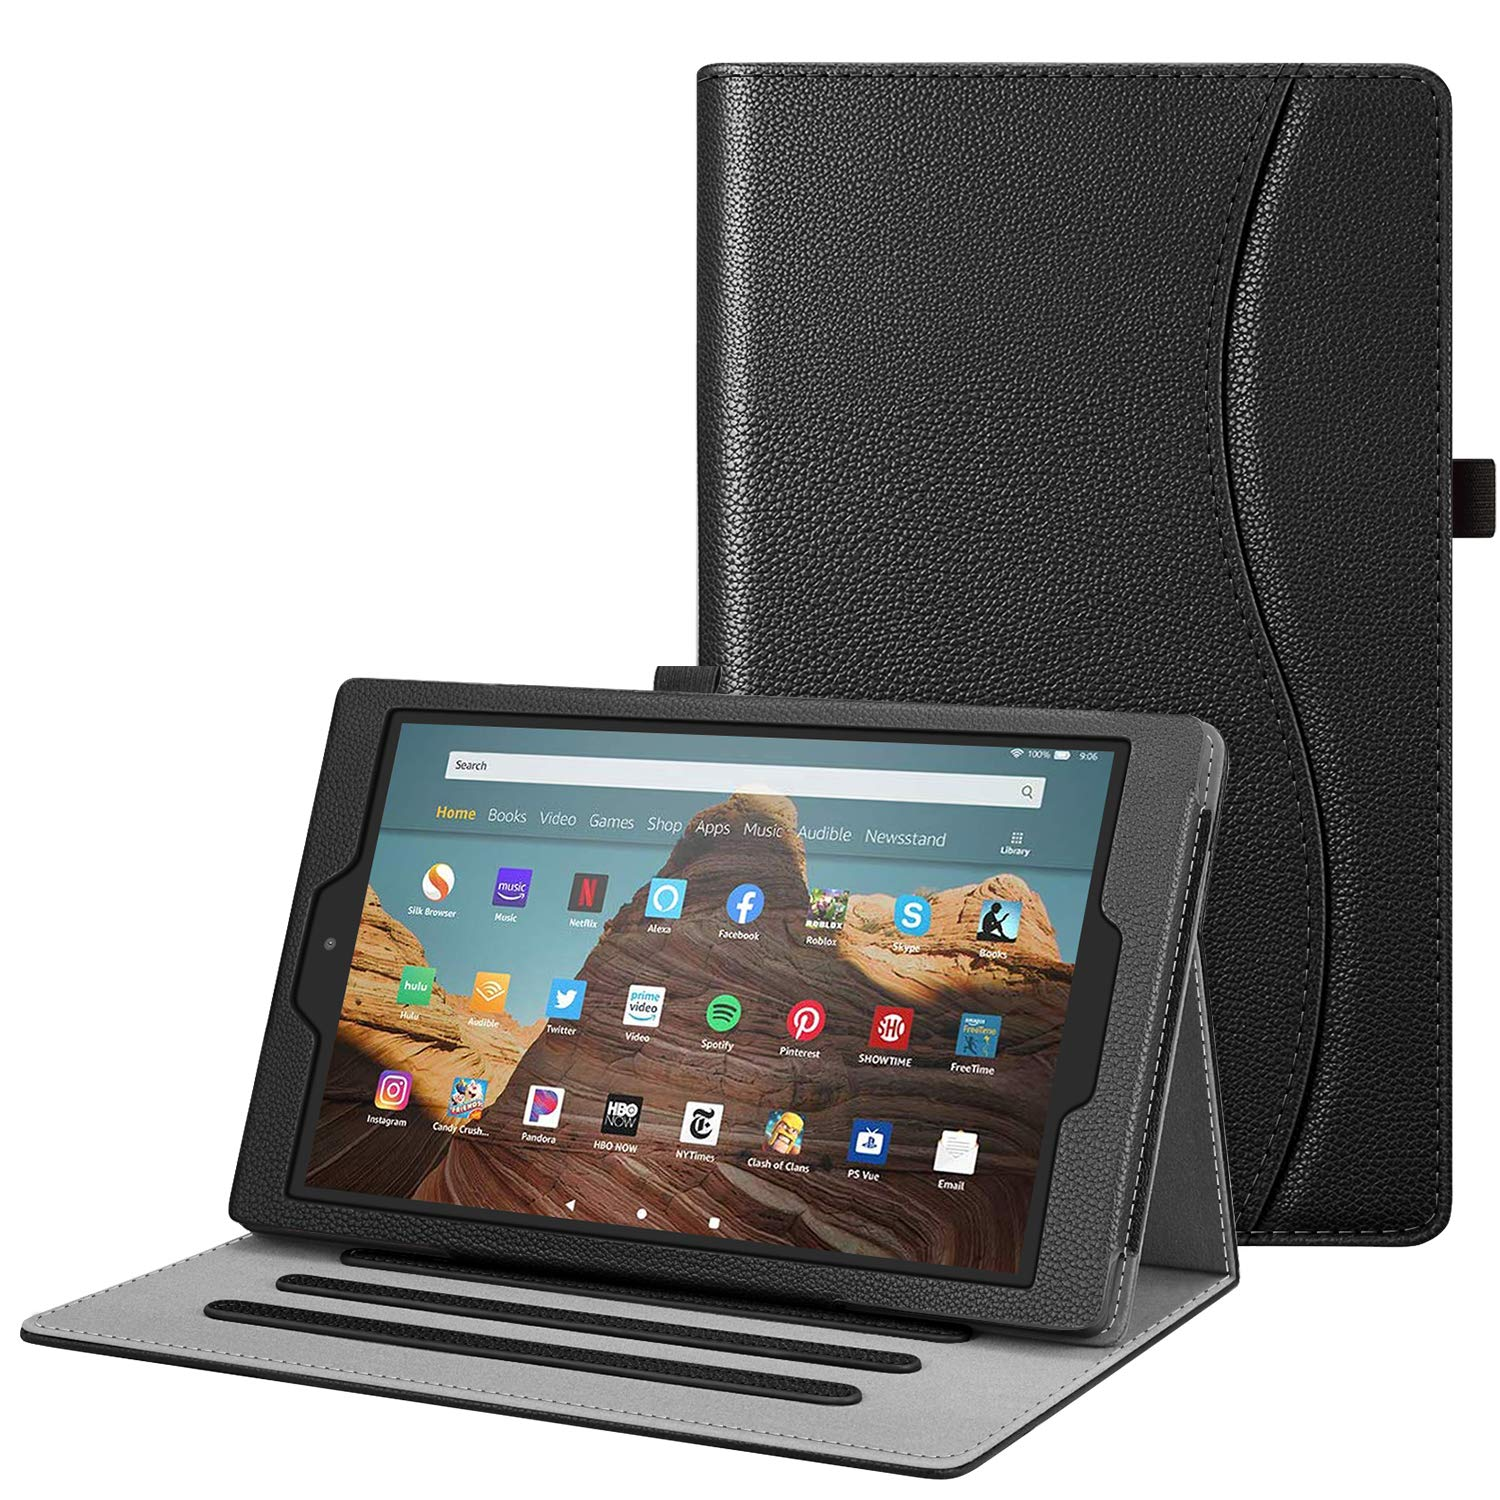 Fintie Case for All-New Amazon Fire HD 10 Tablet (Compatible with 7th and 9th Generations, 2017 and 2019 Releases) - [Multi-Angle Viewing] Folio Stand Cover with Pocket Auto Wake/Sleep, Black